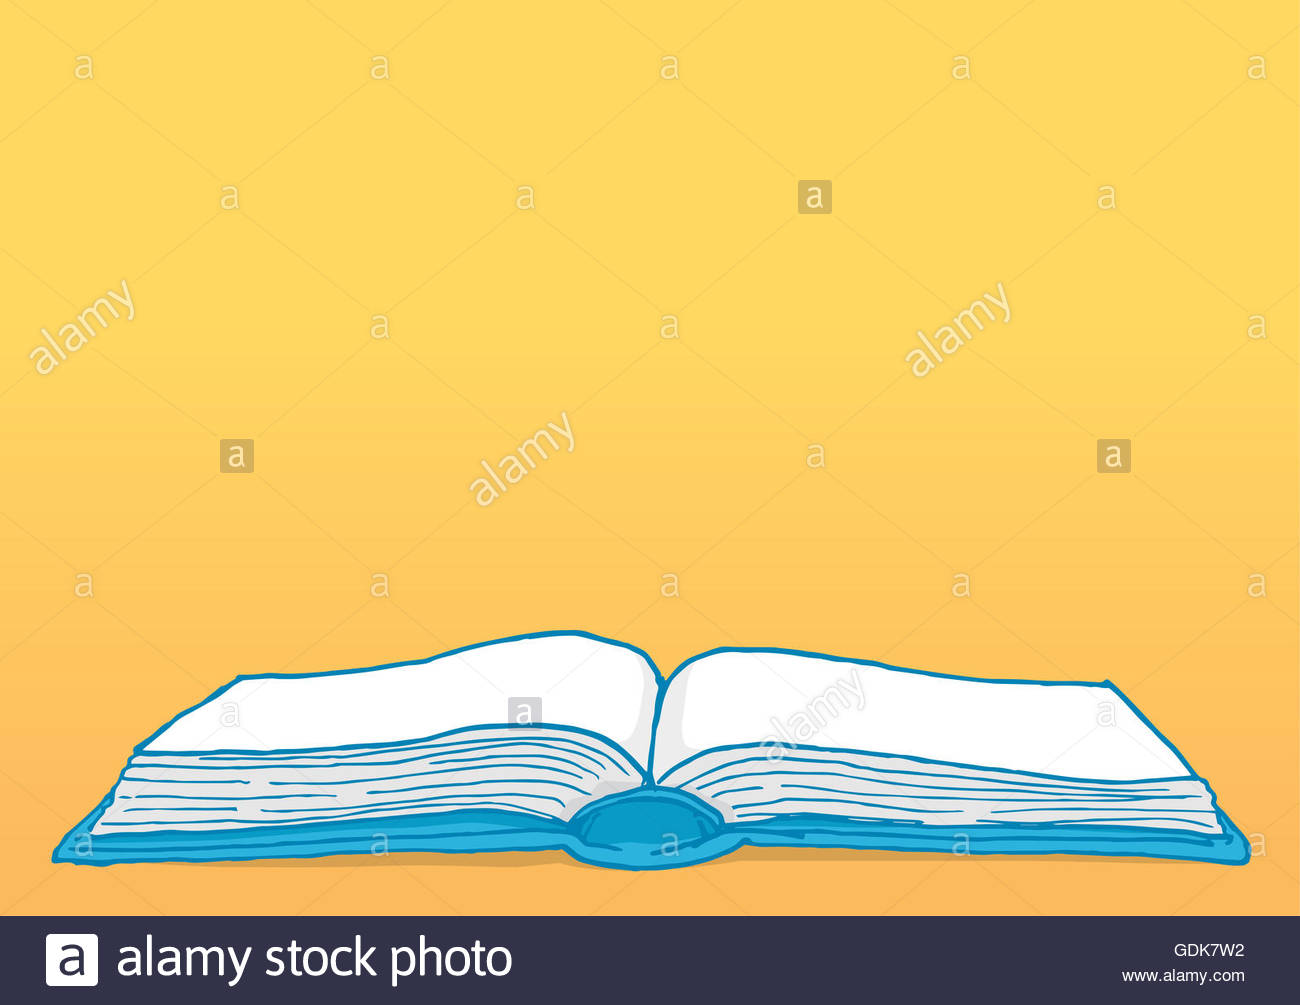 Cartoon illustration education background with blank open book 1300x1005